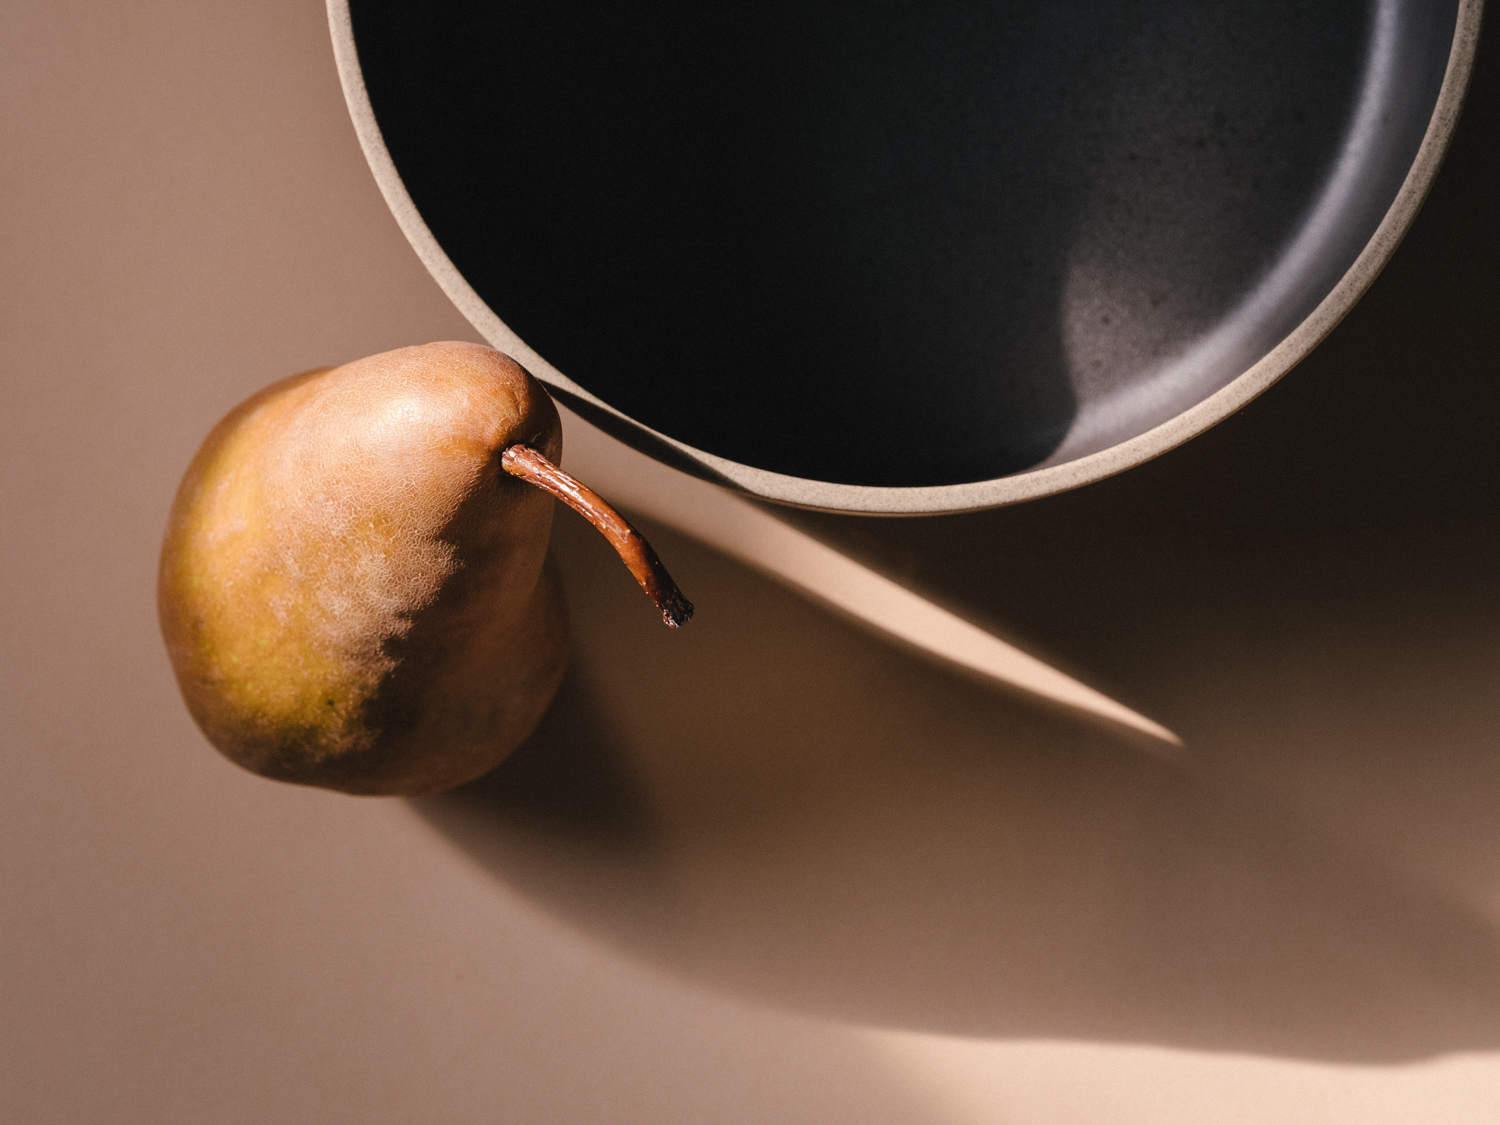 pear_stilllife_tch1